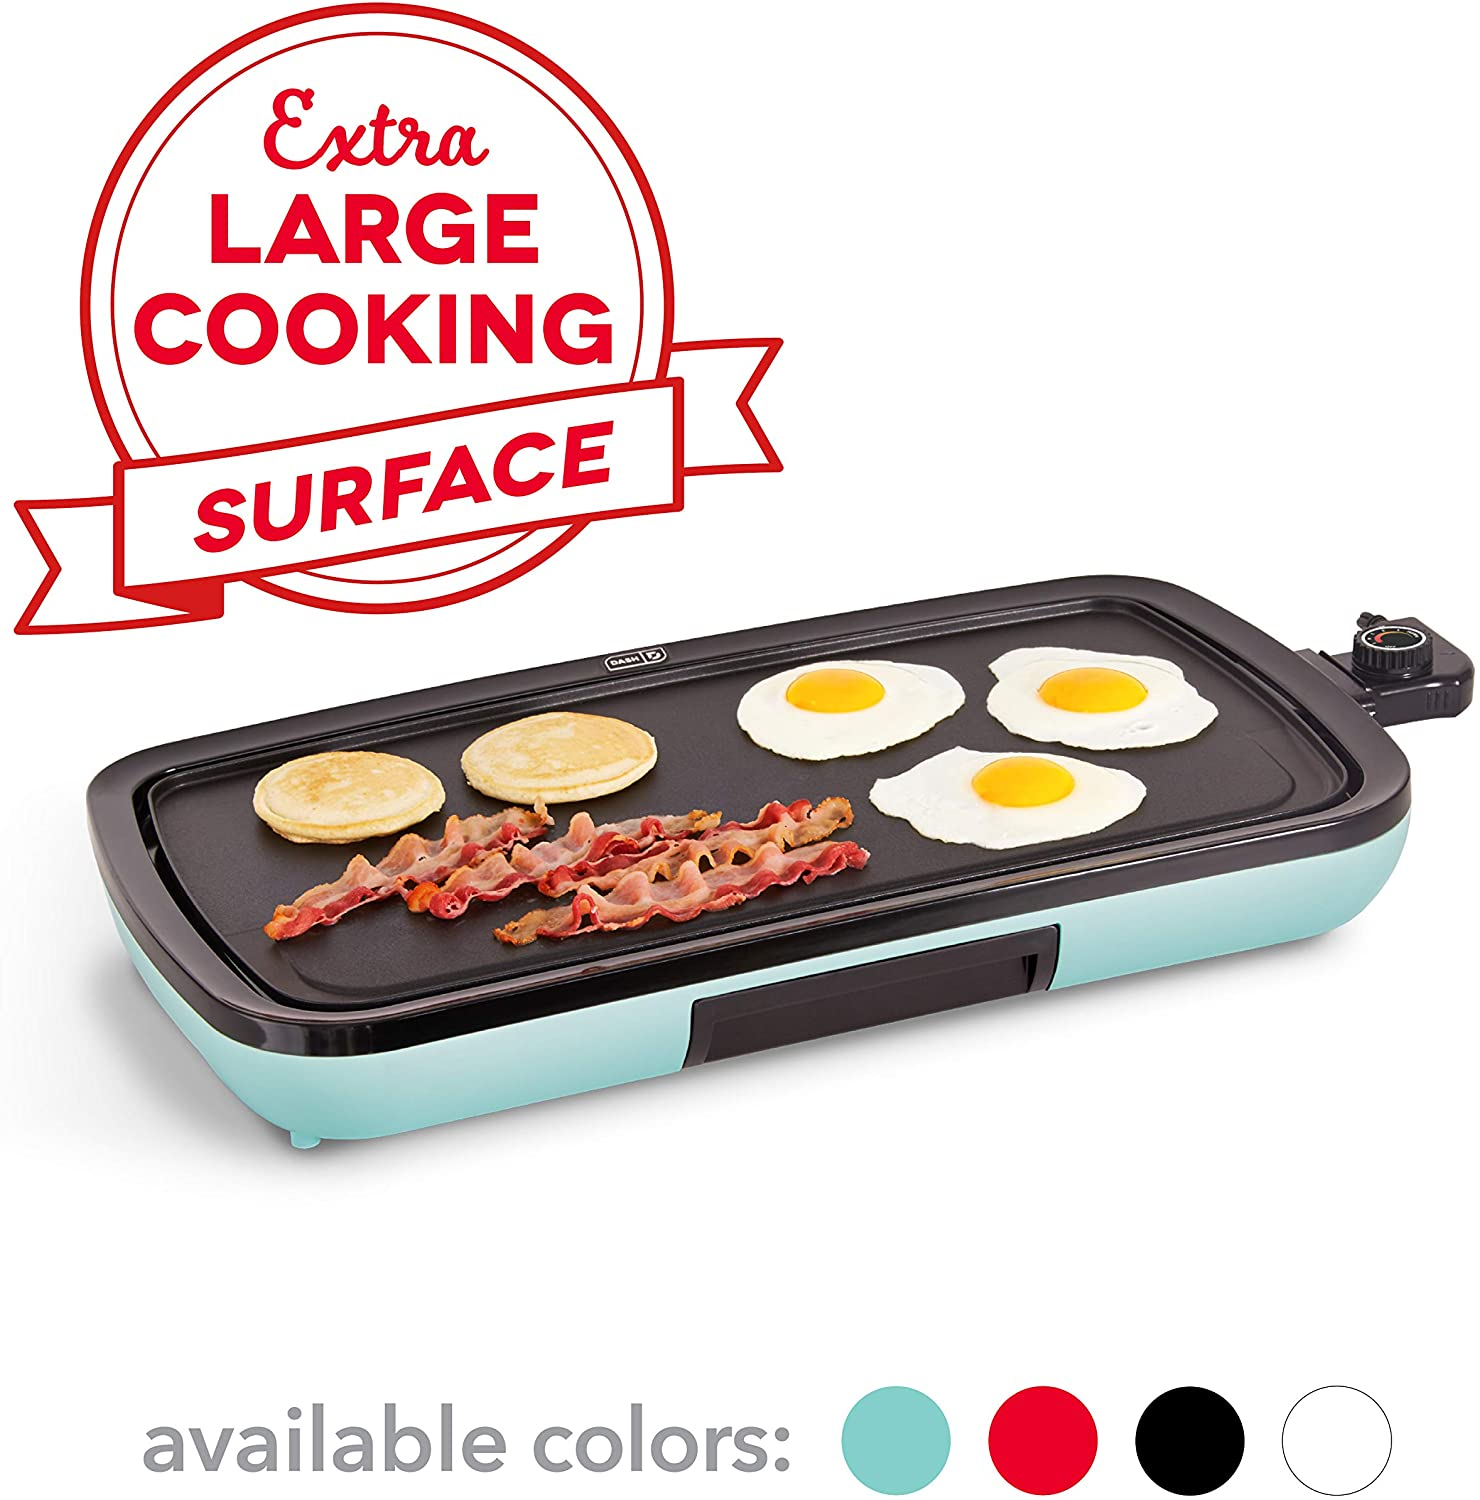 Nonstick Griddle for Pancakes